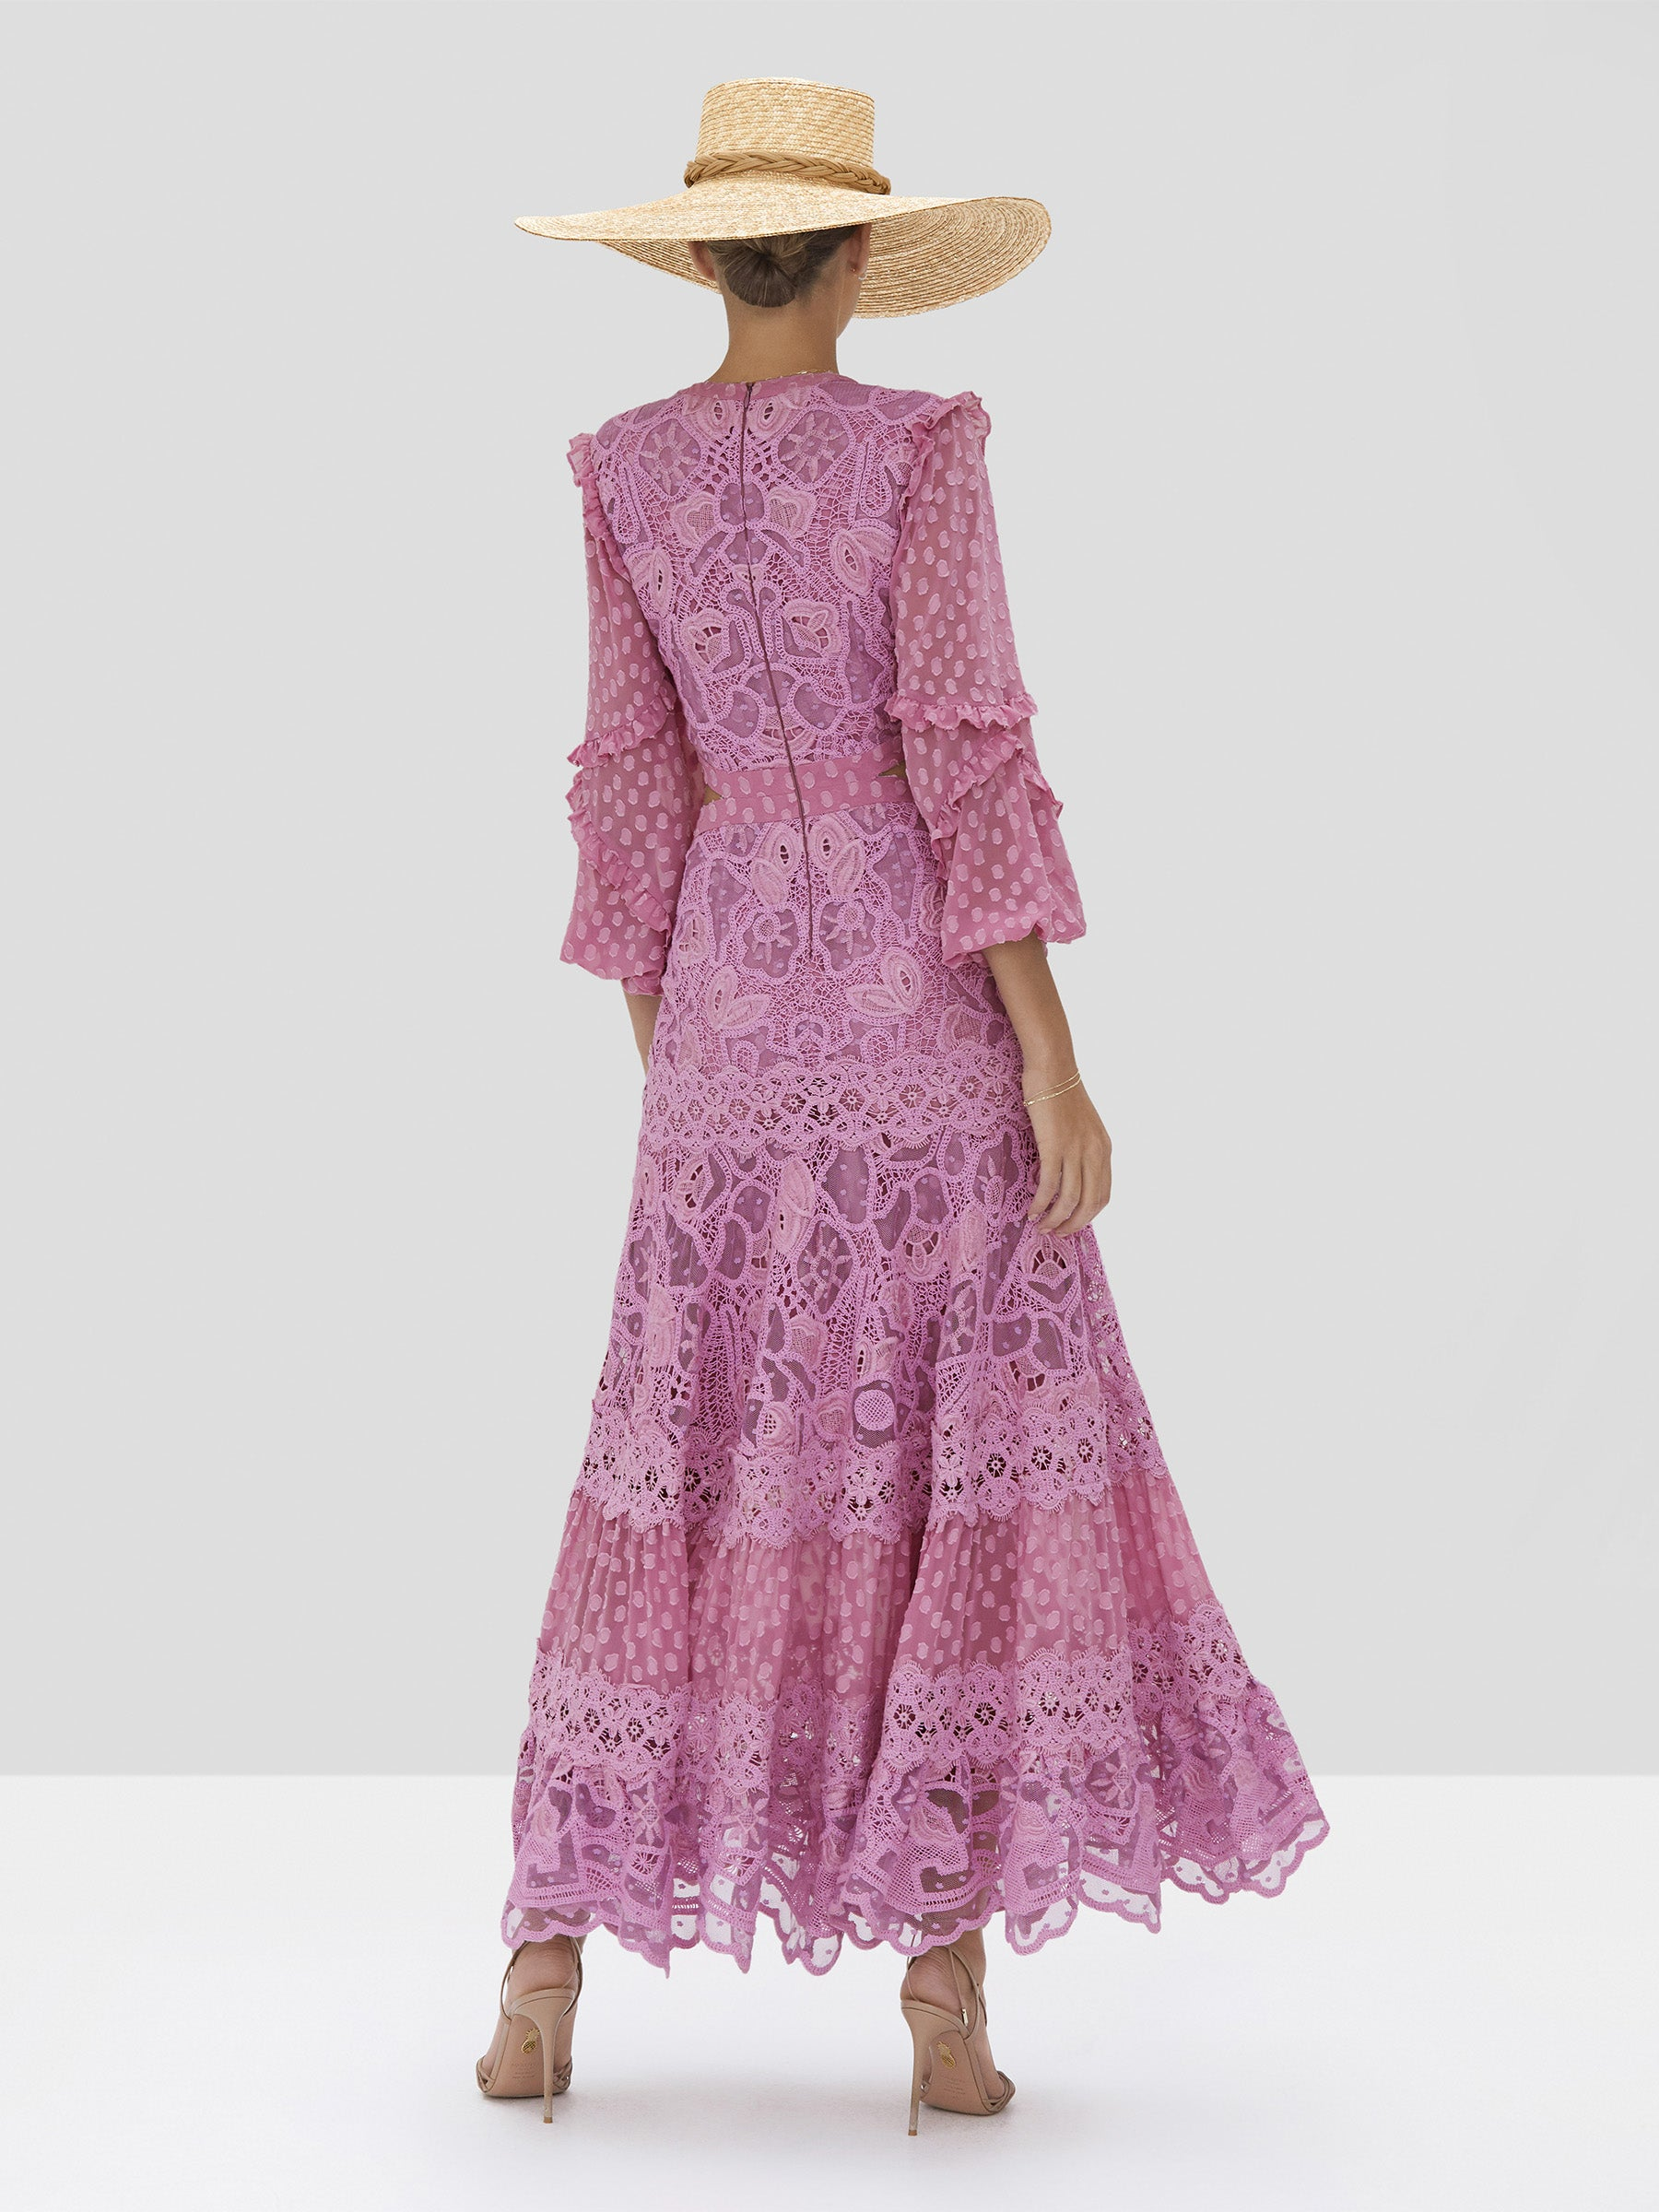 The Zendaya Dress in Lilac Macrame from the Spring Summer 2020 - Rear View